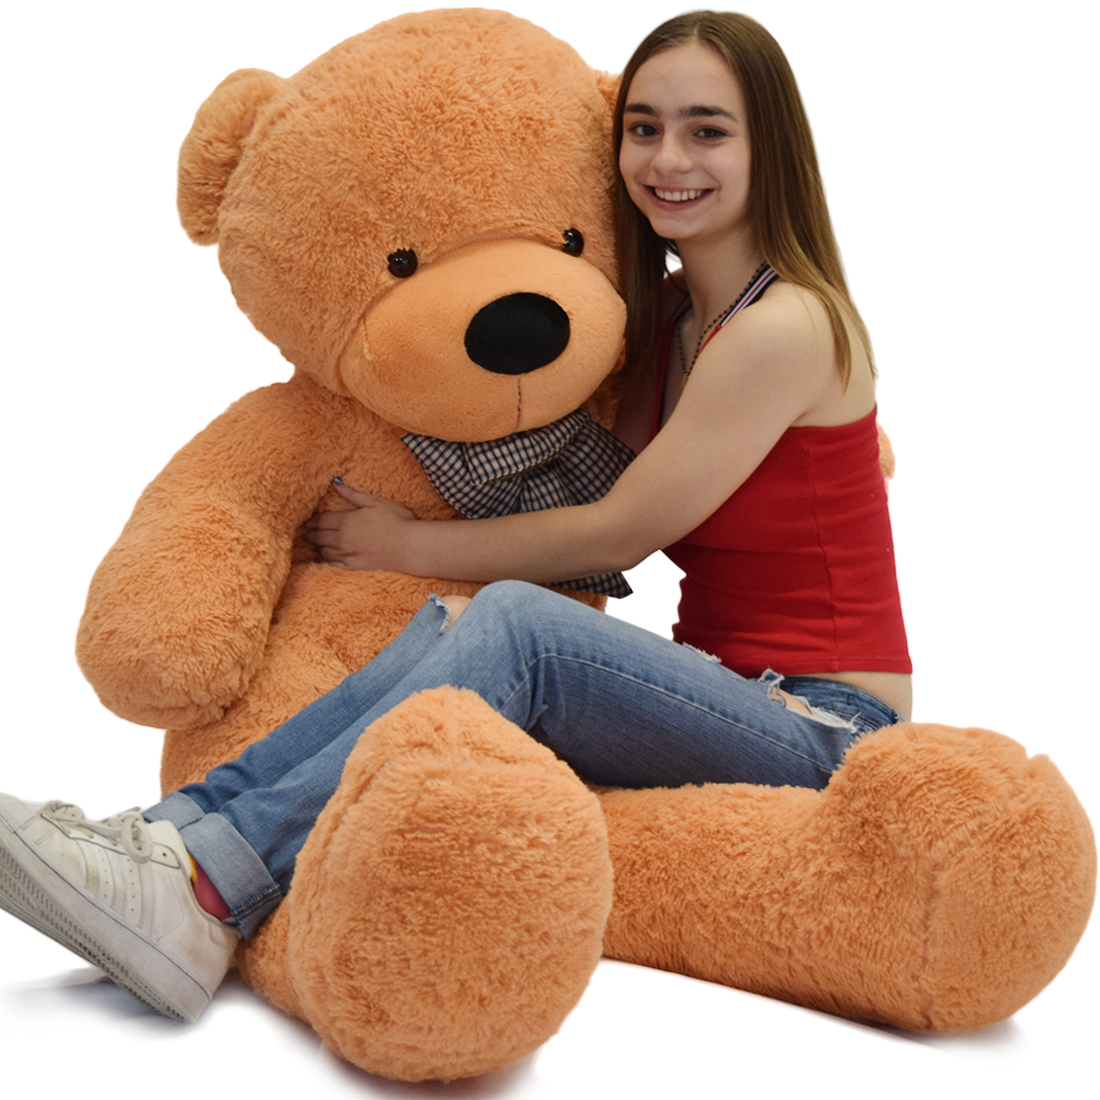 "WOWMAX 4 Foot Light Brown Giant Huge Teddy Bear Cuddly Stuffed Plush Animals Teddy Bear Toy Doll 47"" by"